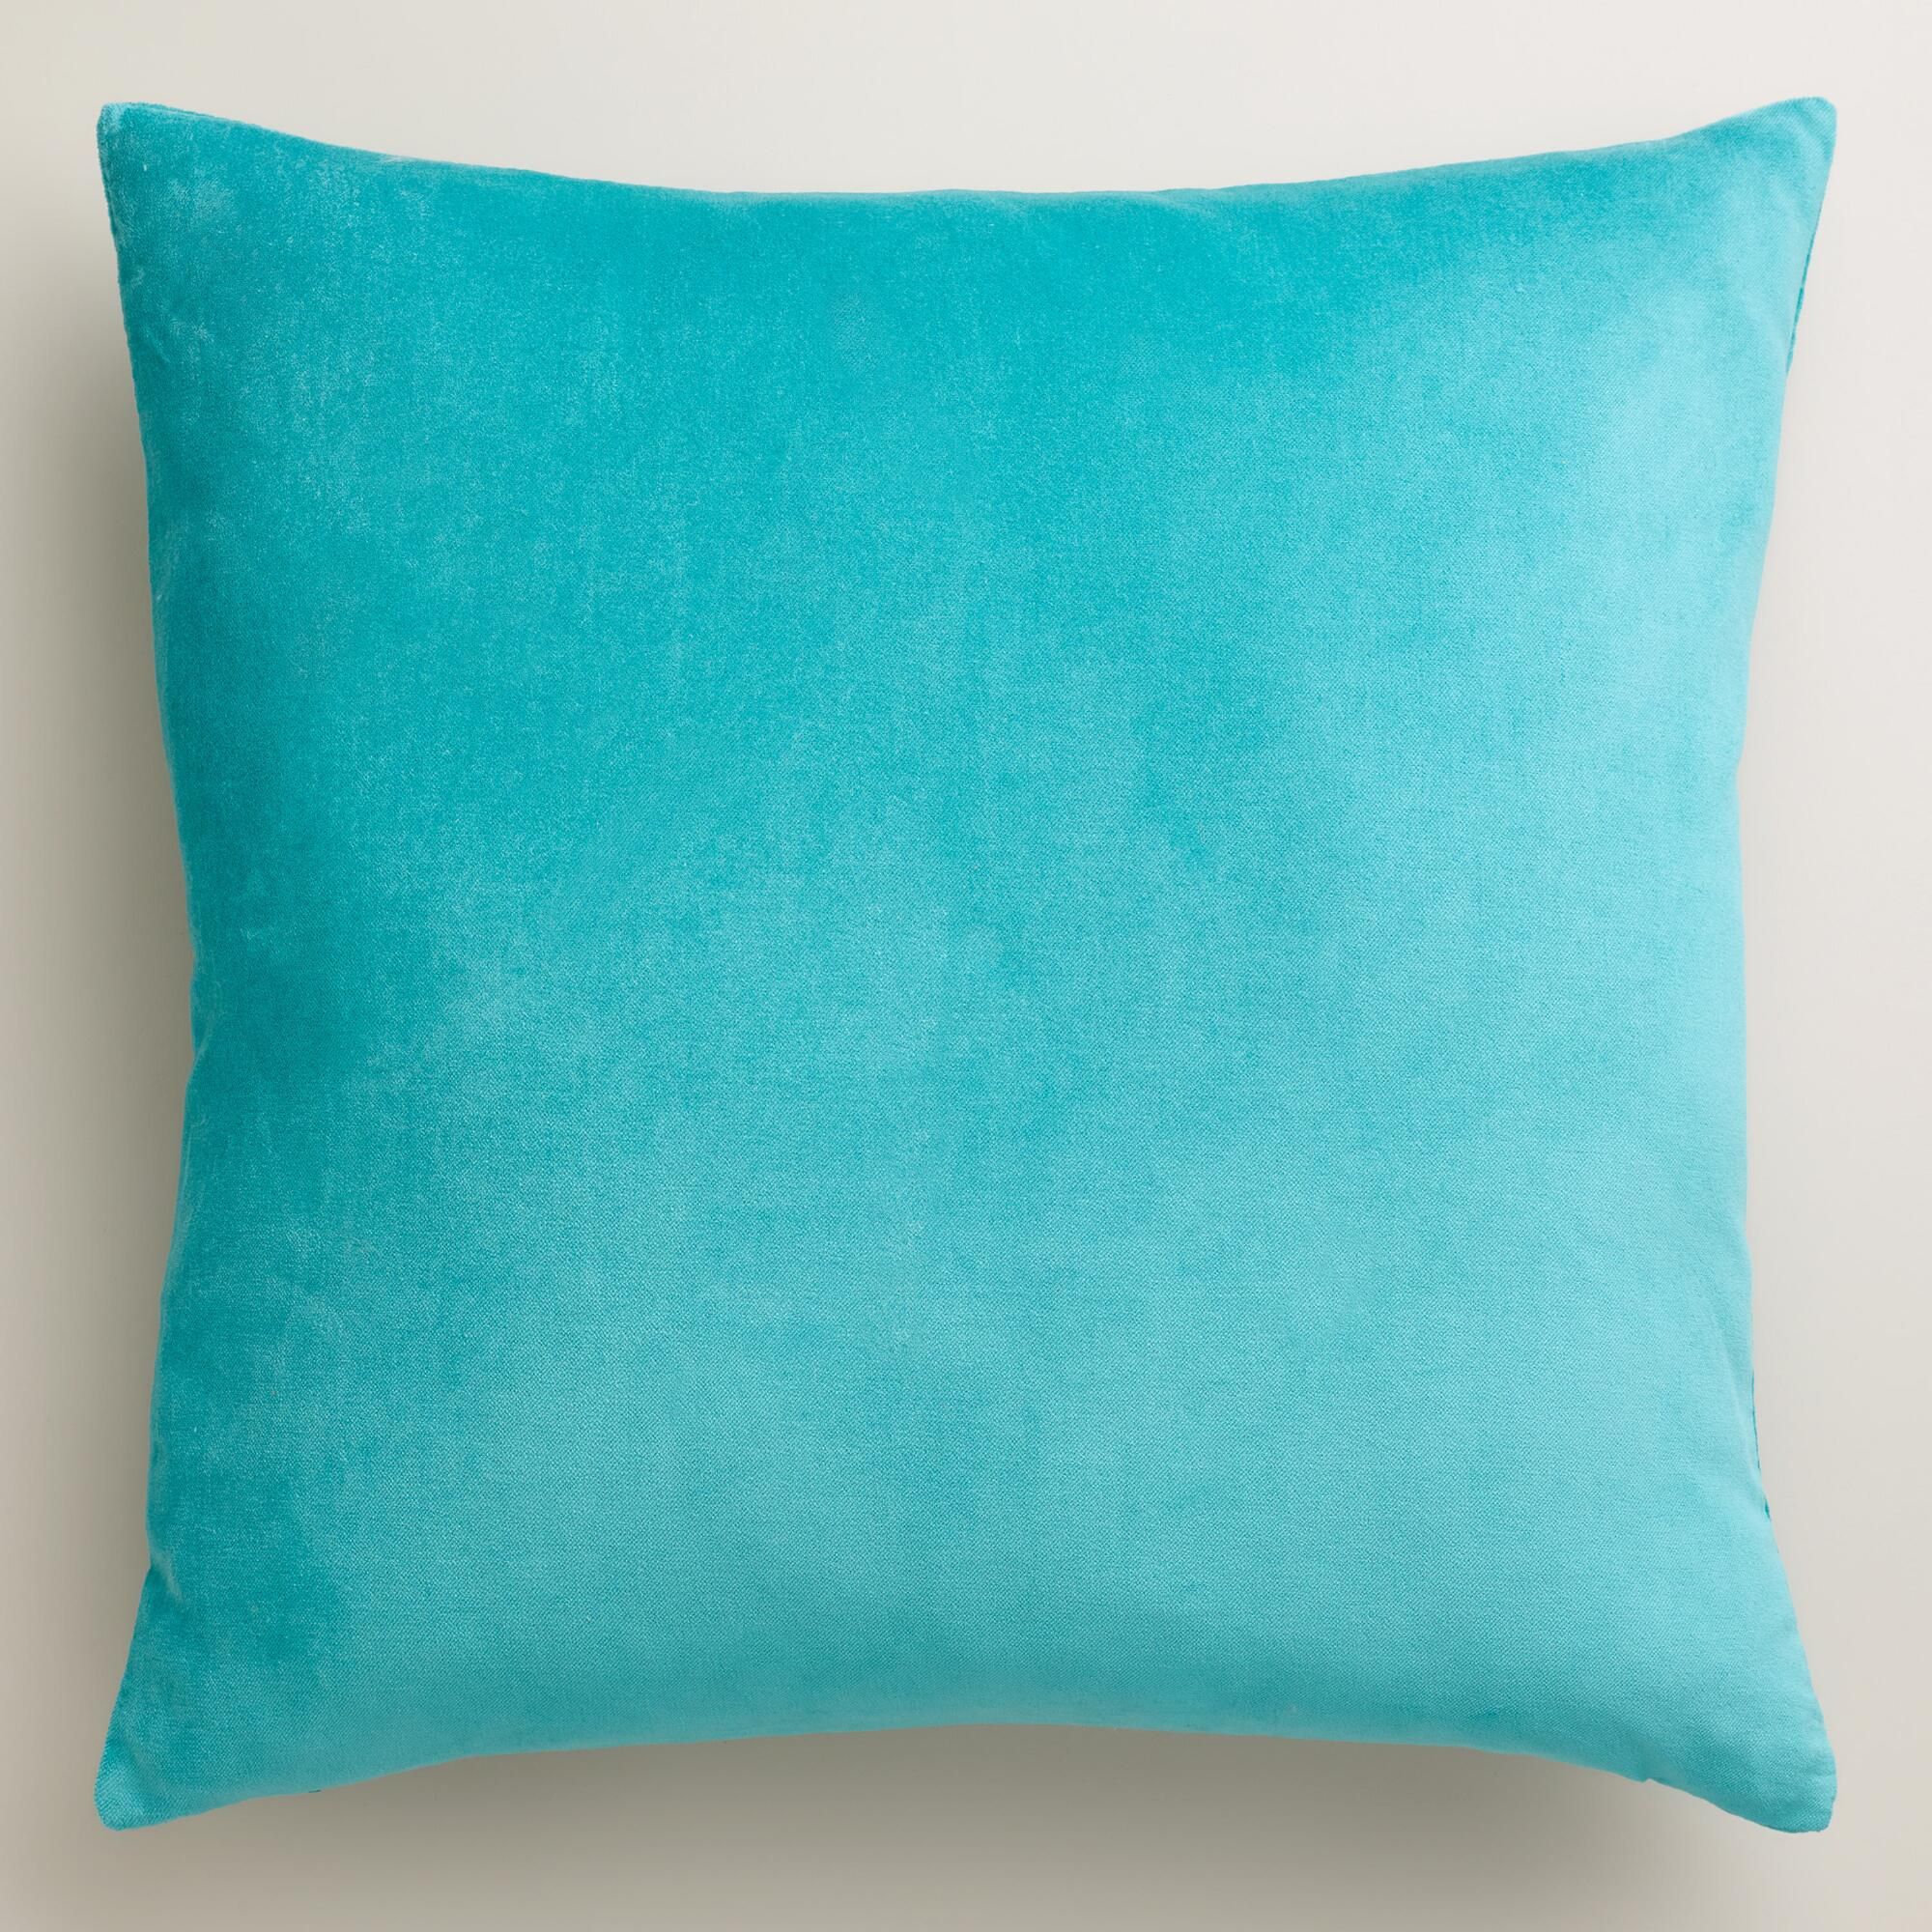 Aqua Velvet Throw Pillows World Market